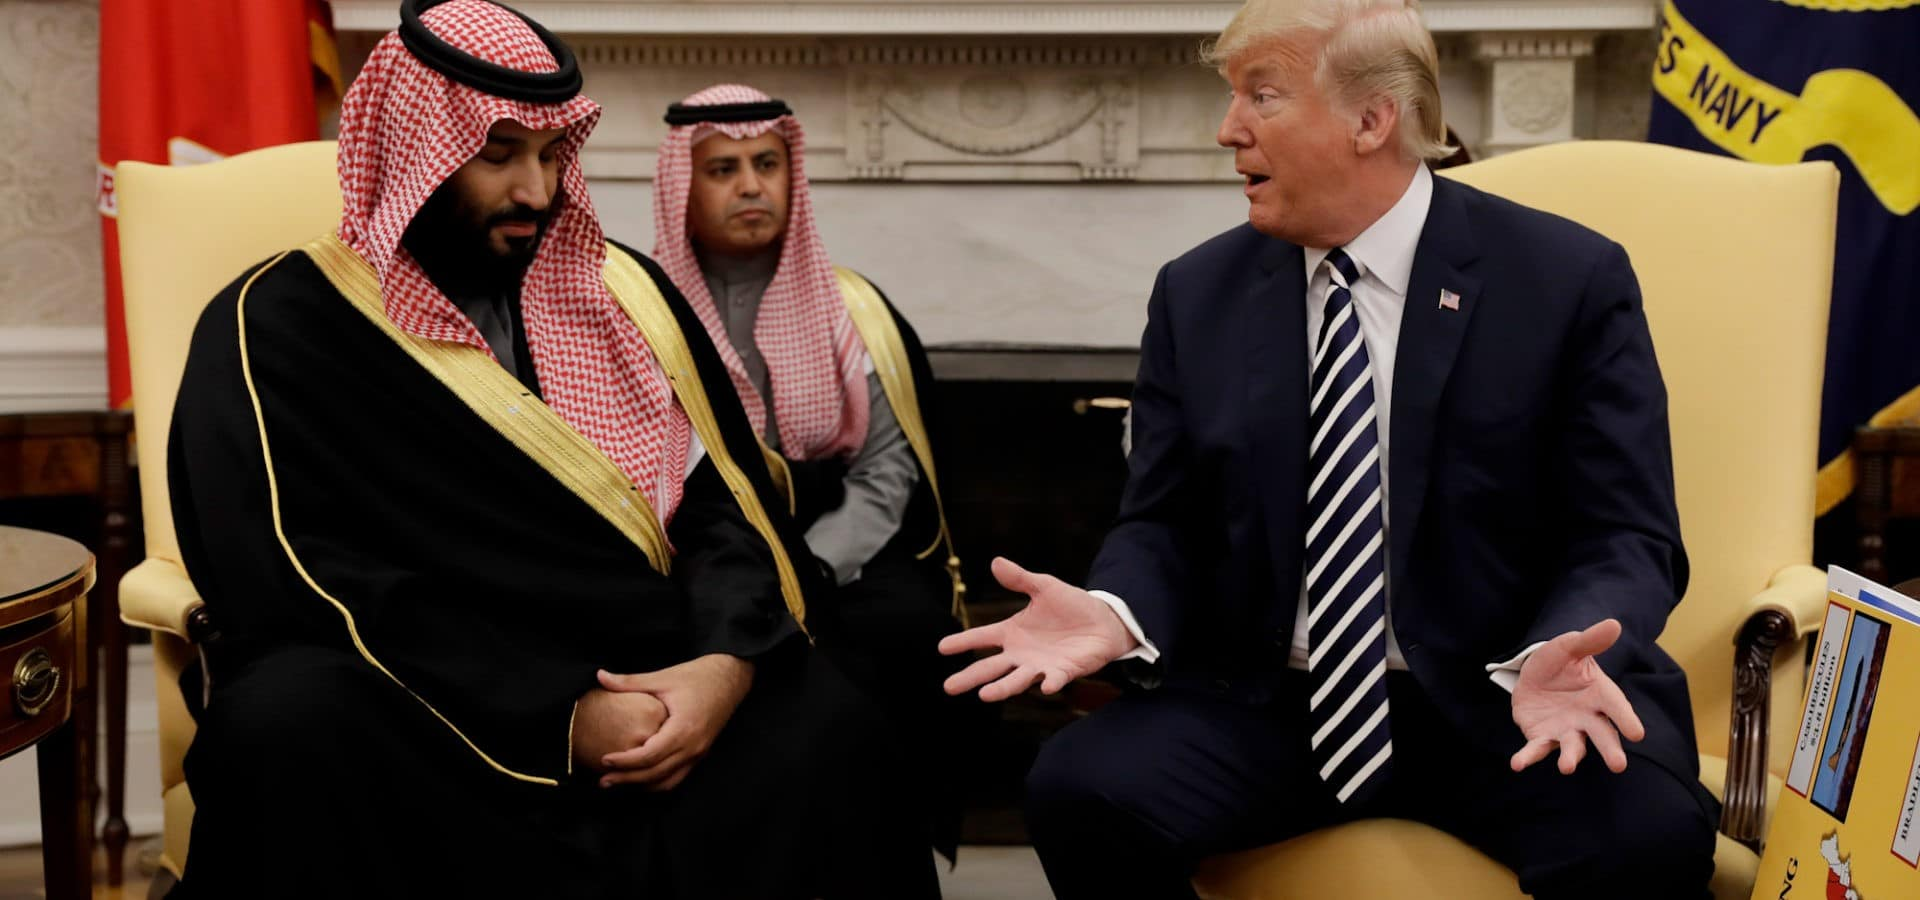 MbS: For Better or for Worse?, MbS: For Better or for Worse?